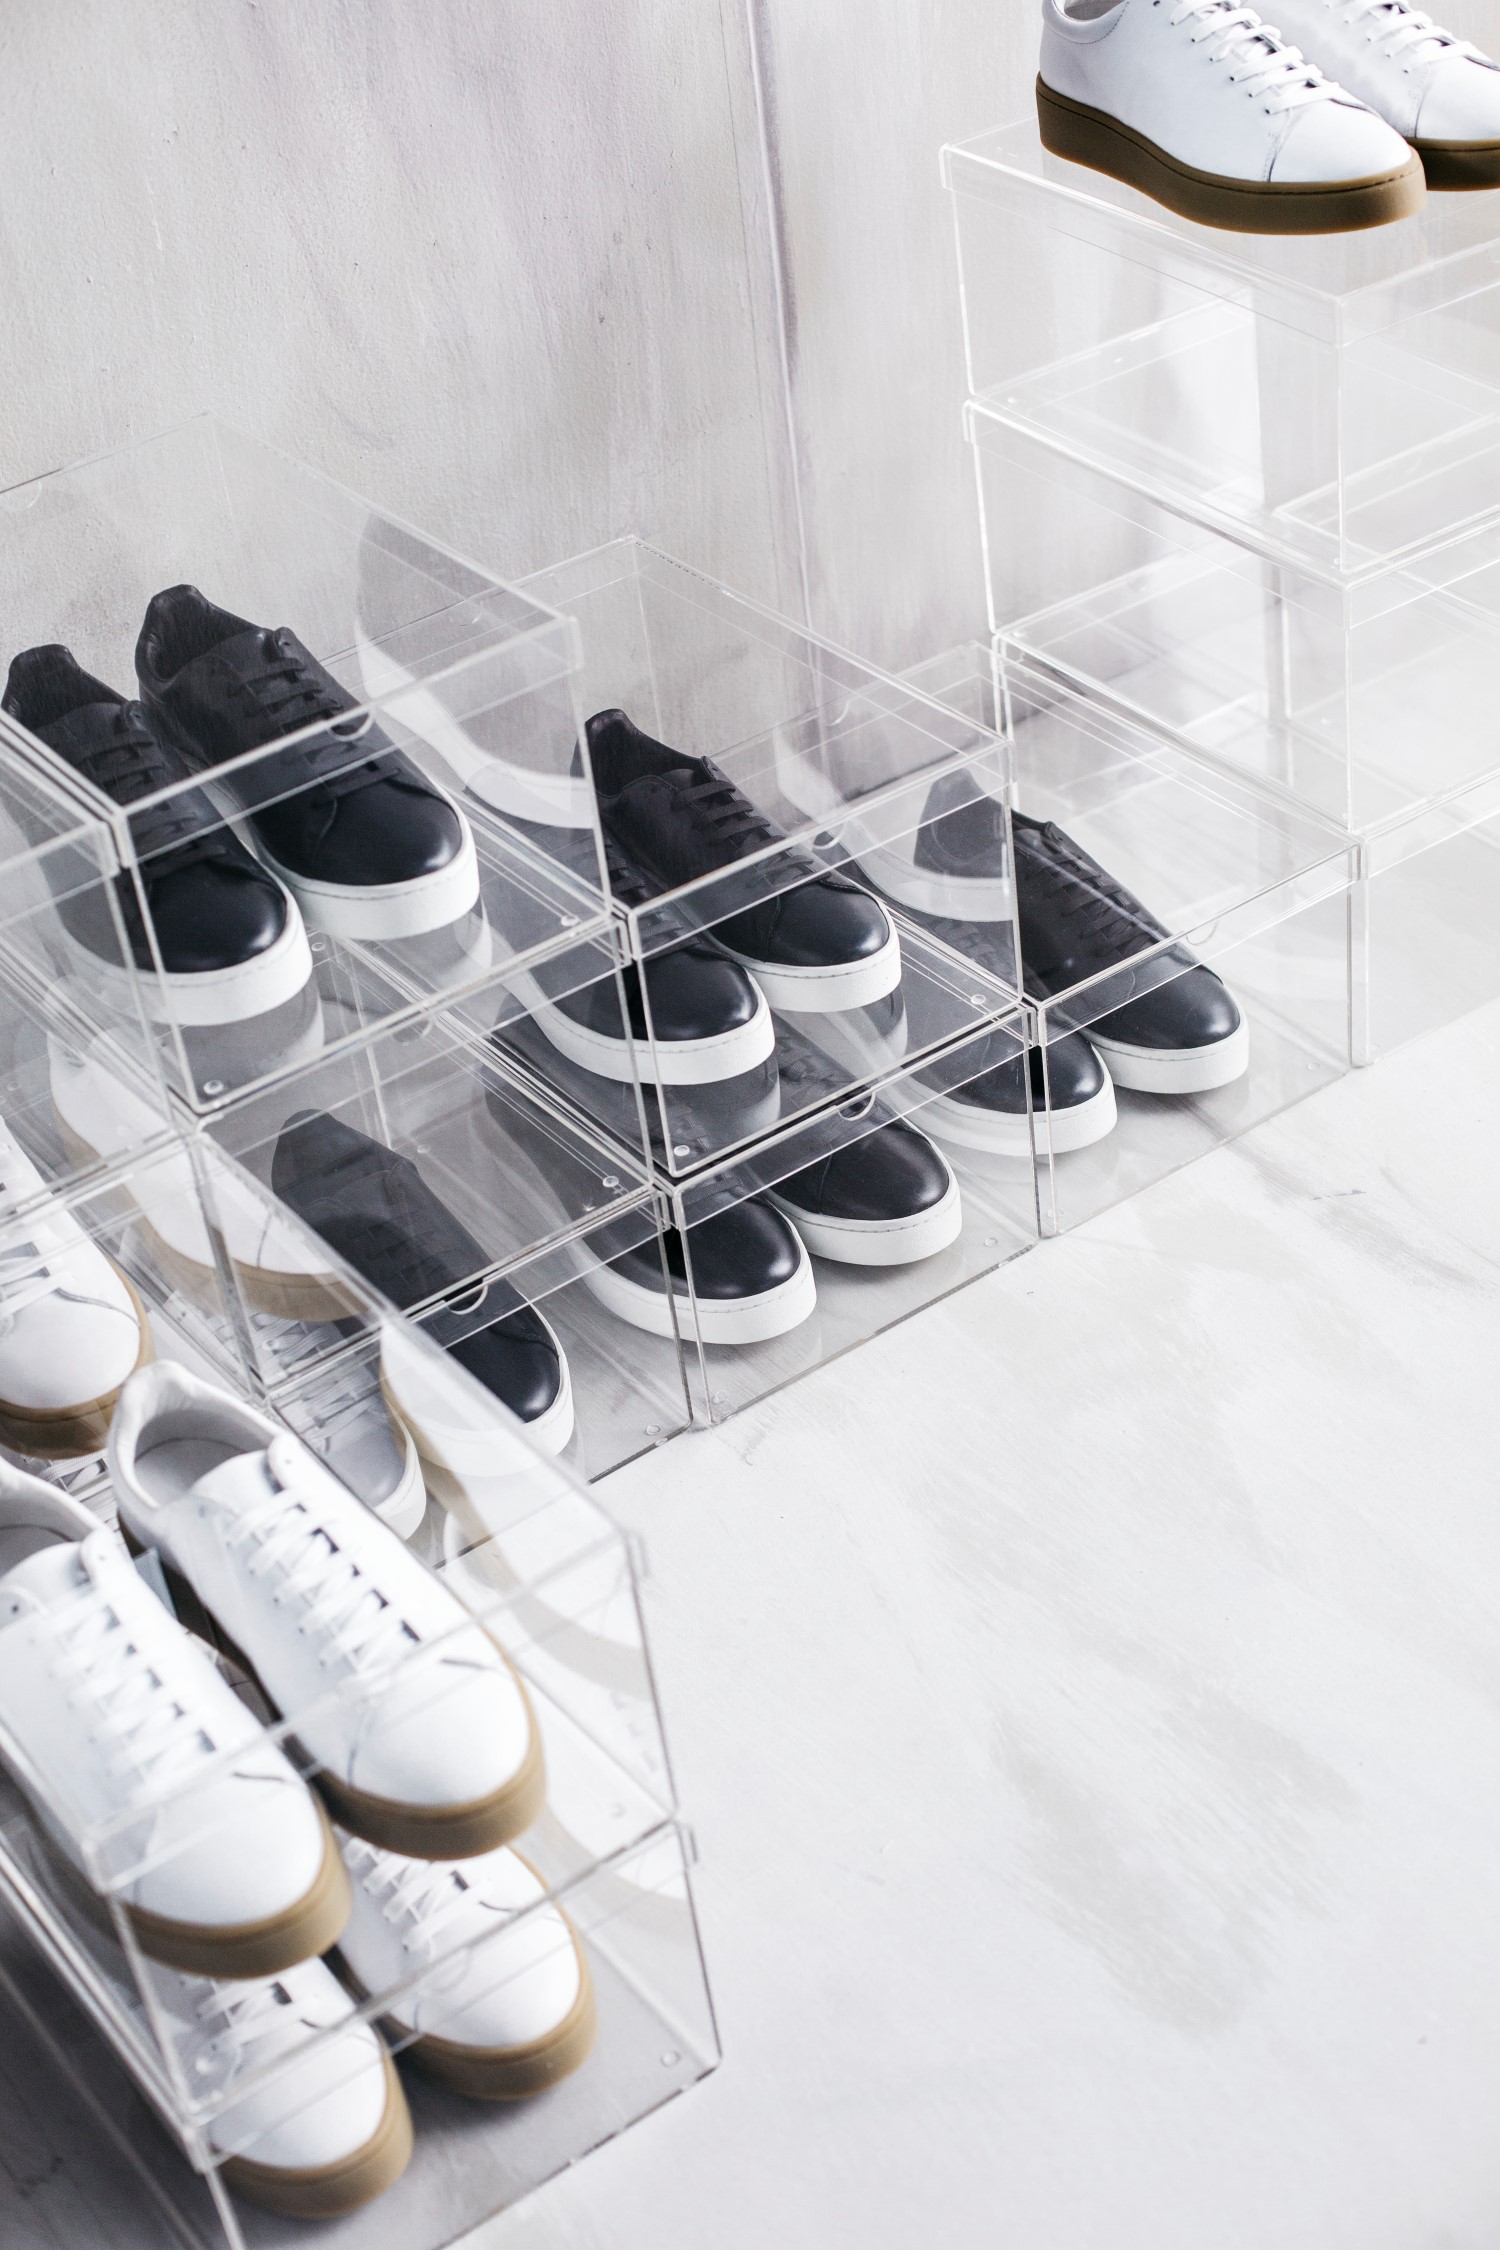 sneakers in the ikea spanst case